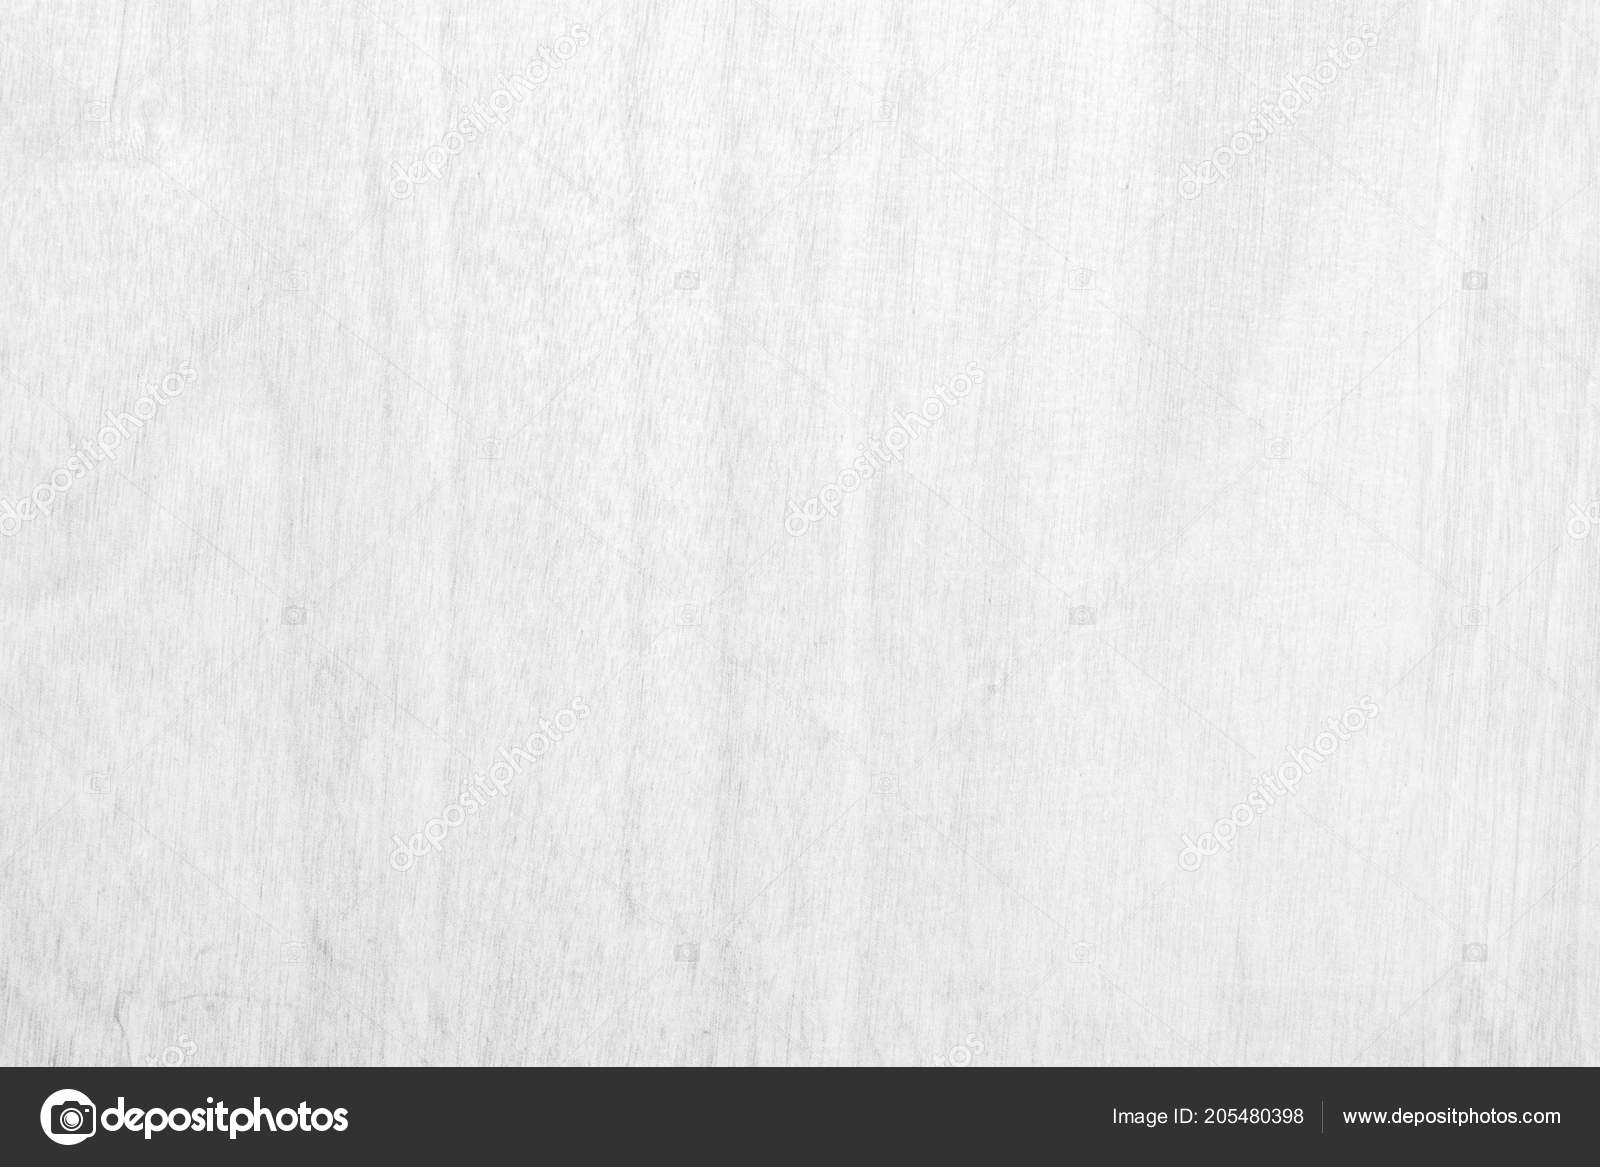 White table top view Floor Pattern Table Top View Of Wood Texture Over White Light Natural Color Background Grey Clean Grain Wooden Floor Teak Panel Backdrop With Plain Board Pale Detail Depositphotos Table Top View Wood Texture White Light Natural Color Background